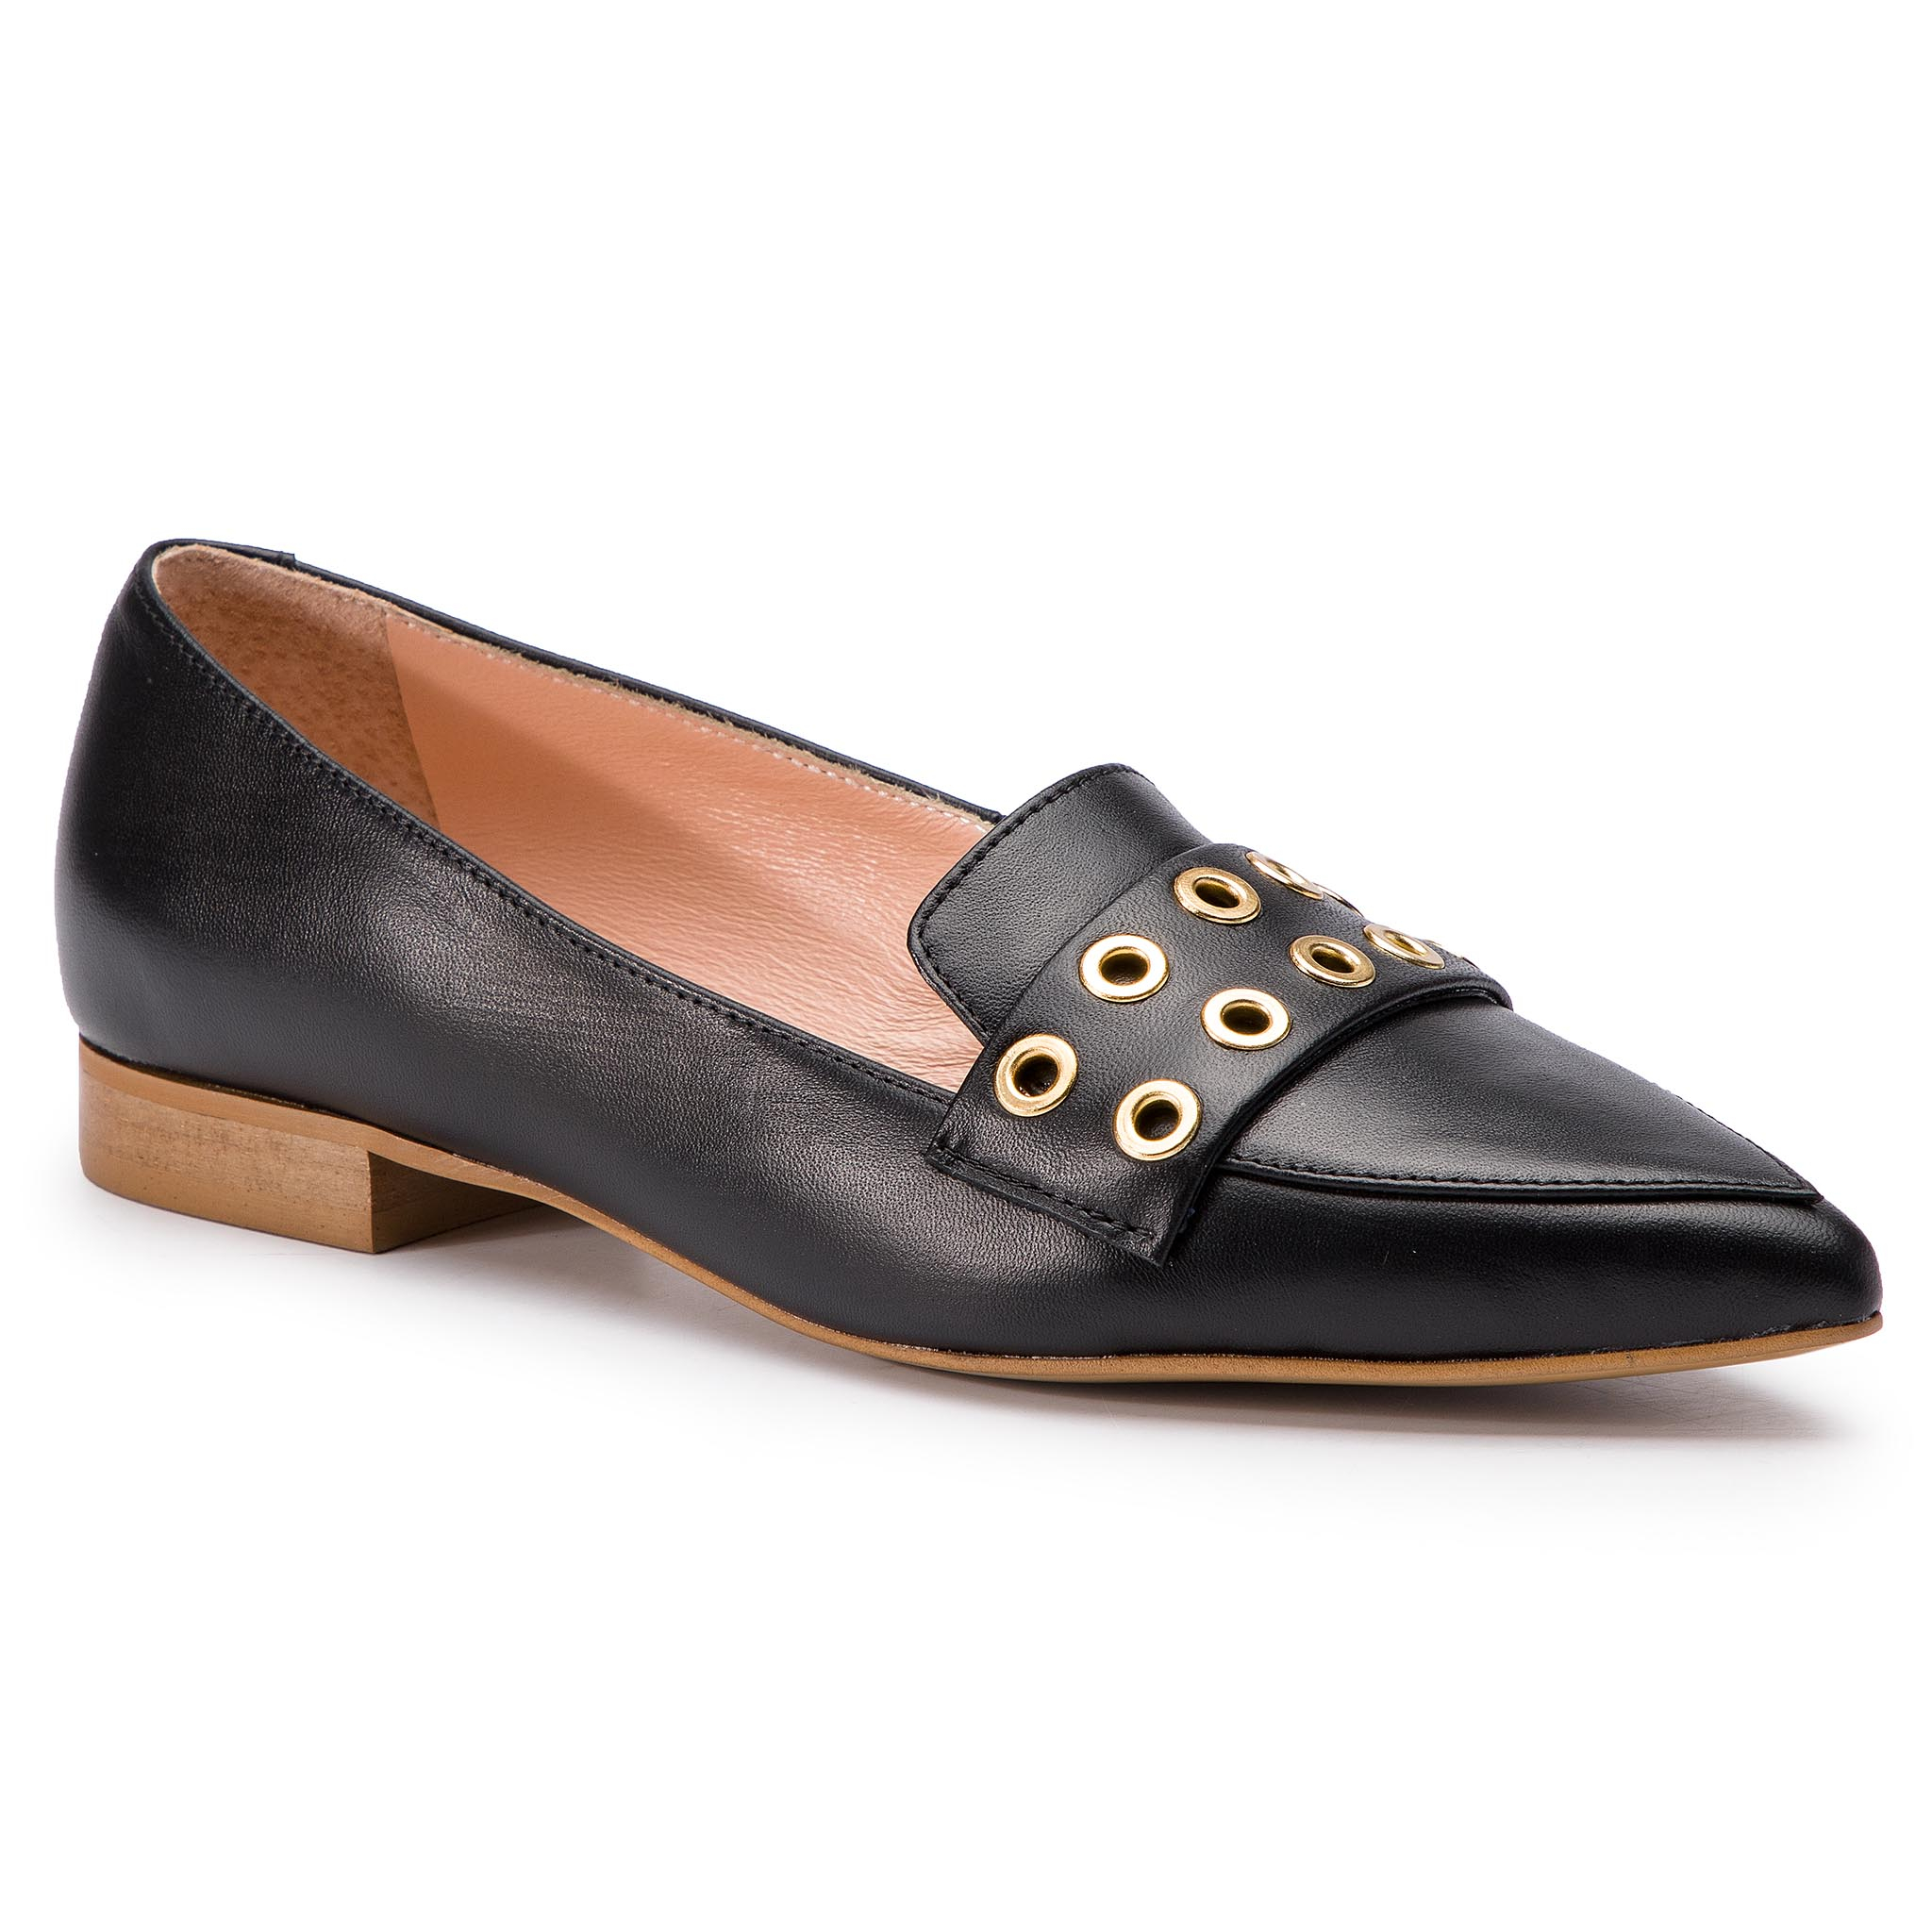 Ballerines L37 - One By One S29 Noir